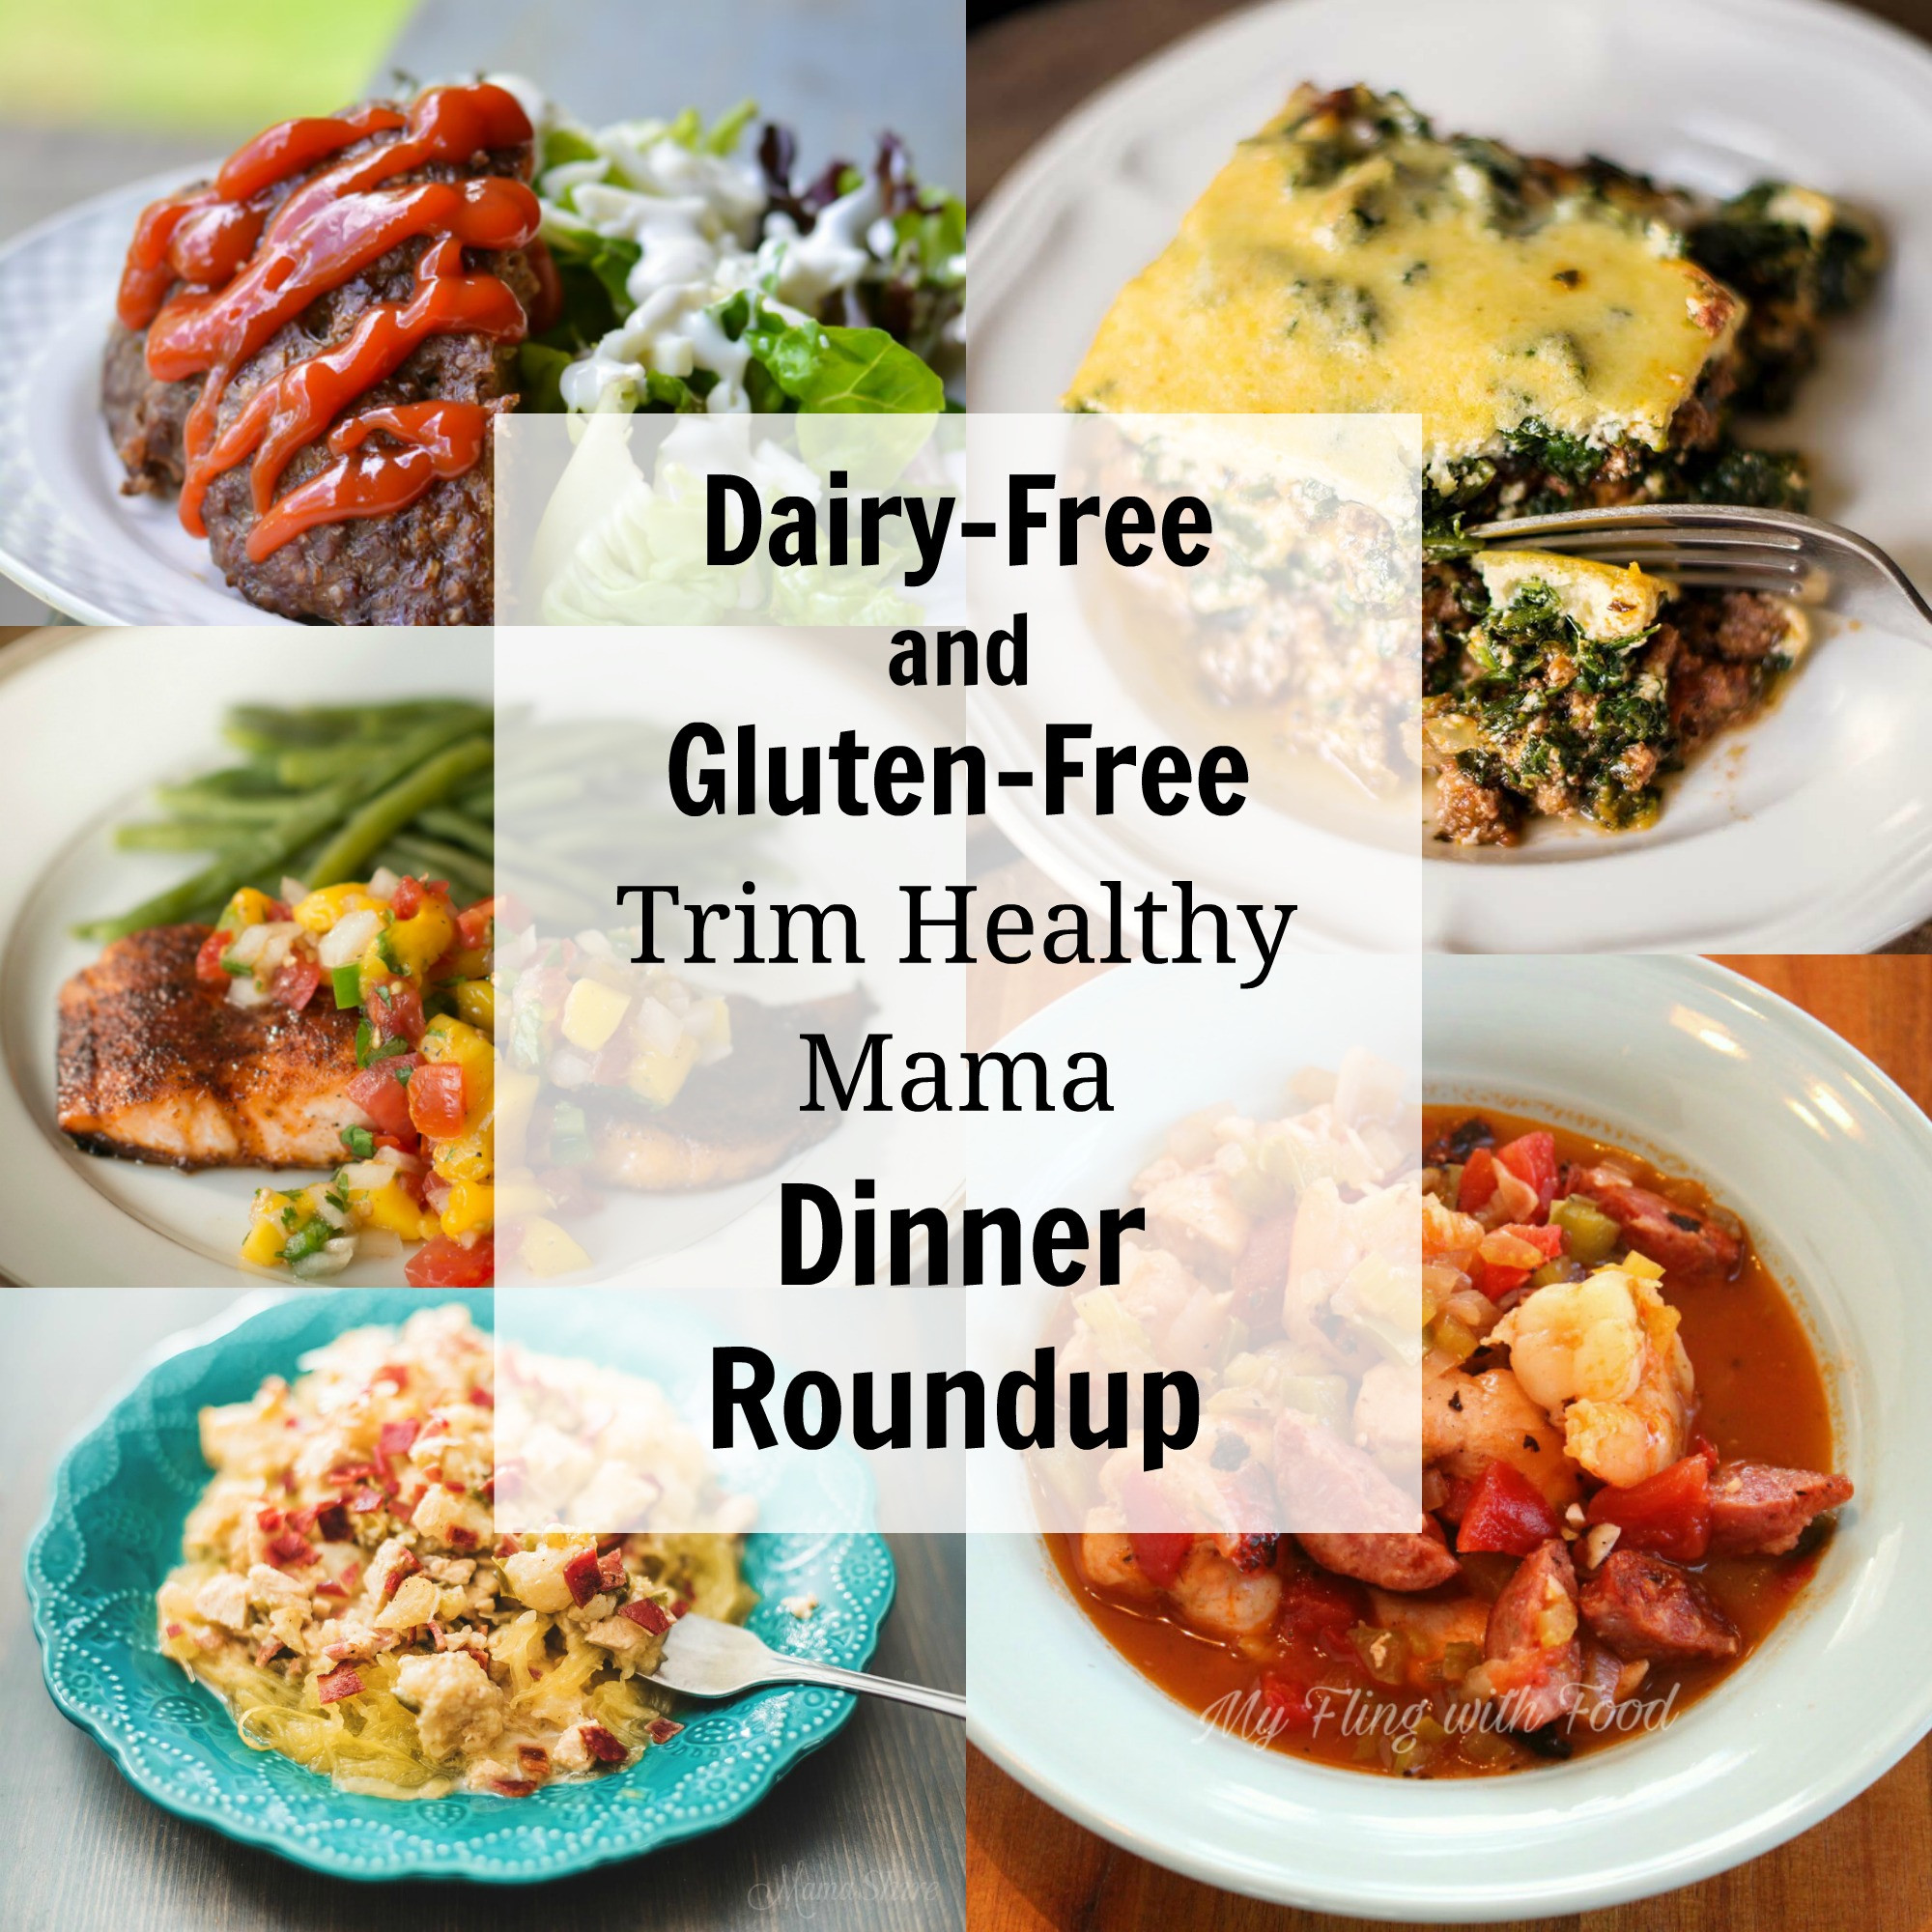 Healthy Dairy Free Recipes  Dairy Free and Gluten Free Trim Healthy Mama Dinners